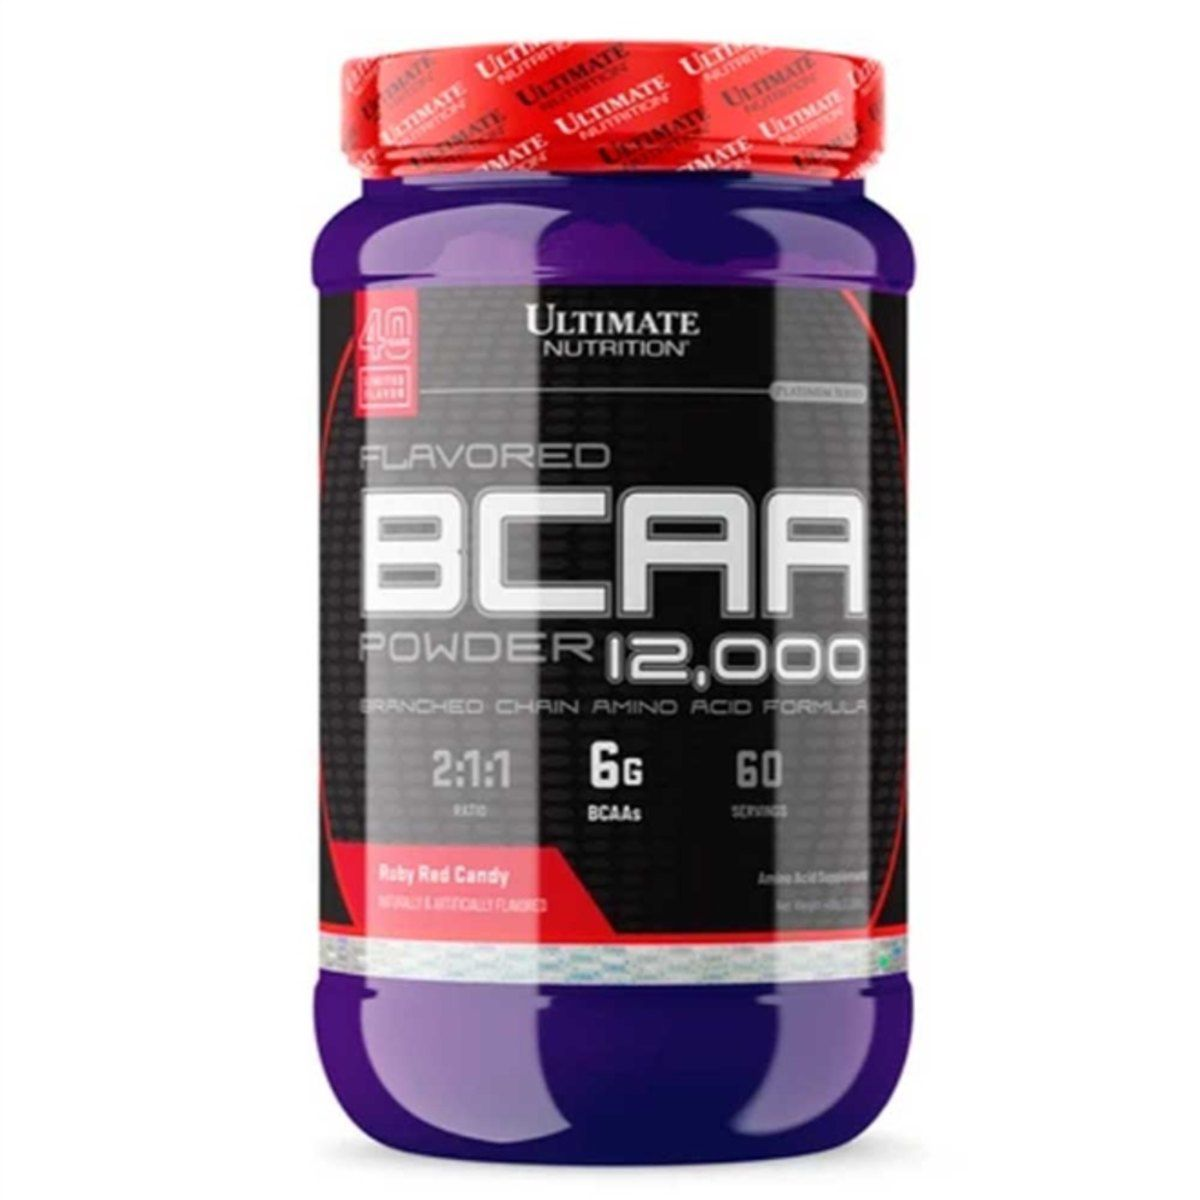 BCAA POWDER 12000 244g RUBY RED - ULTIMATE NUTRITION